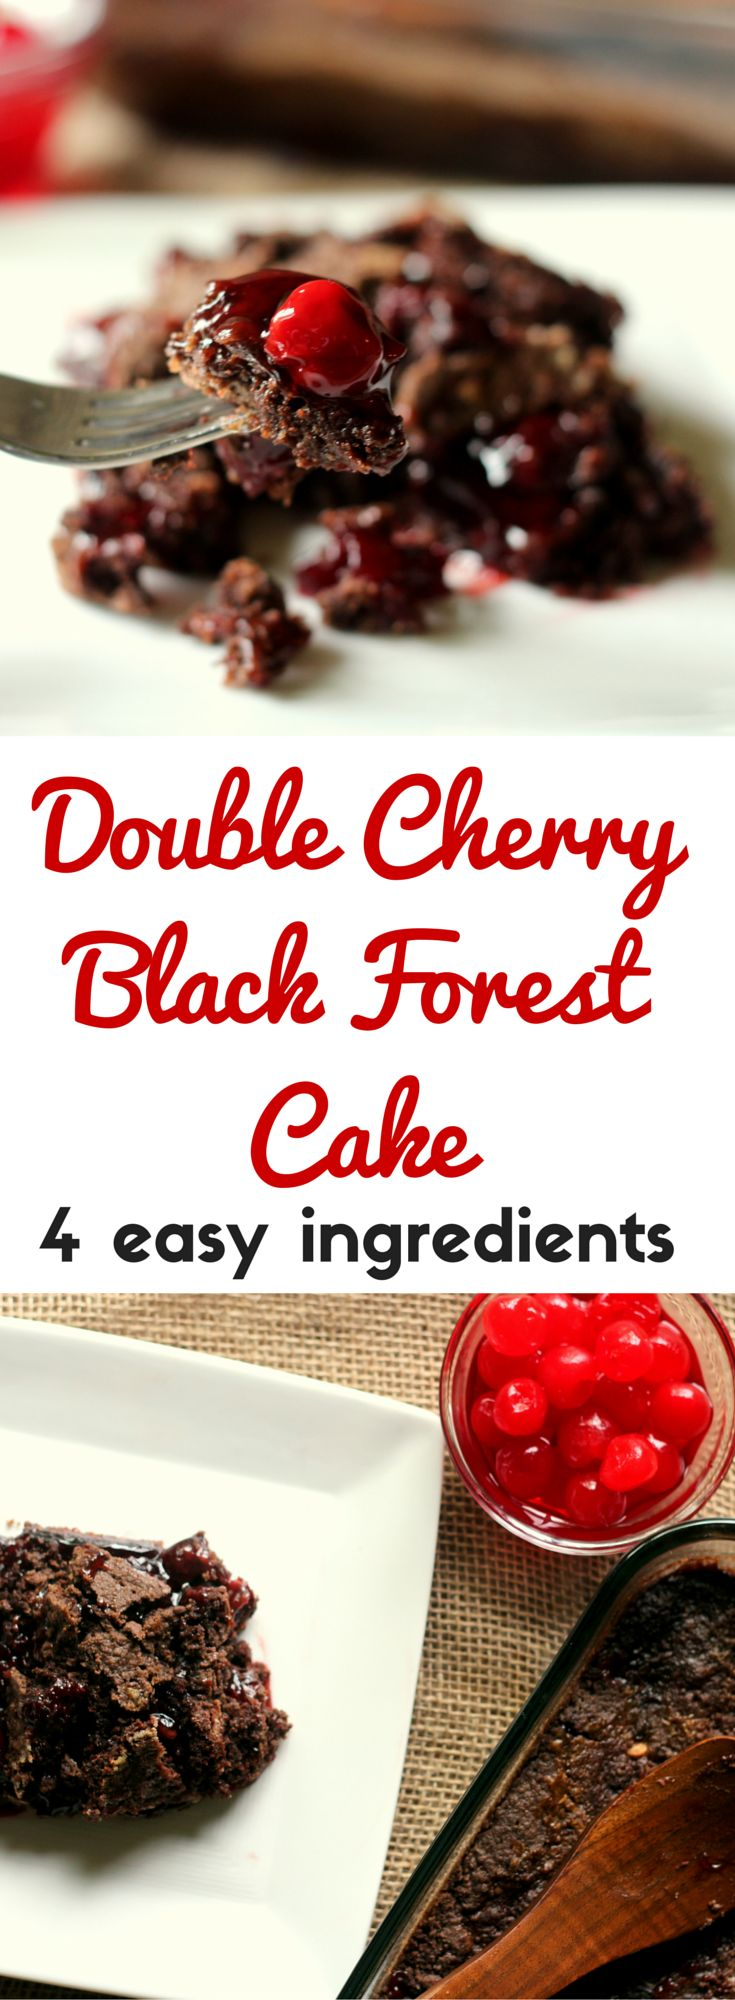 This is the EASIEST dump cake! Just four ingredients, super gooey chocolate cherry cake! Great Valentine's Day dessert.